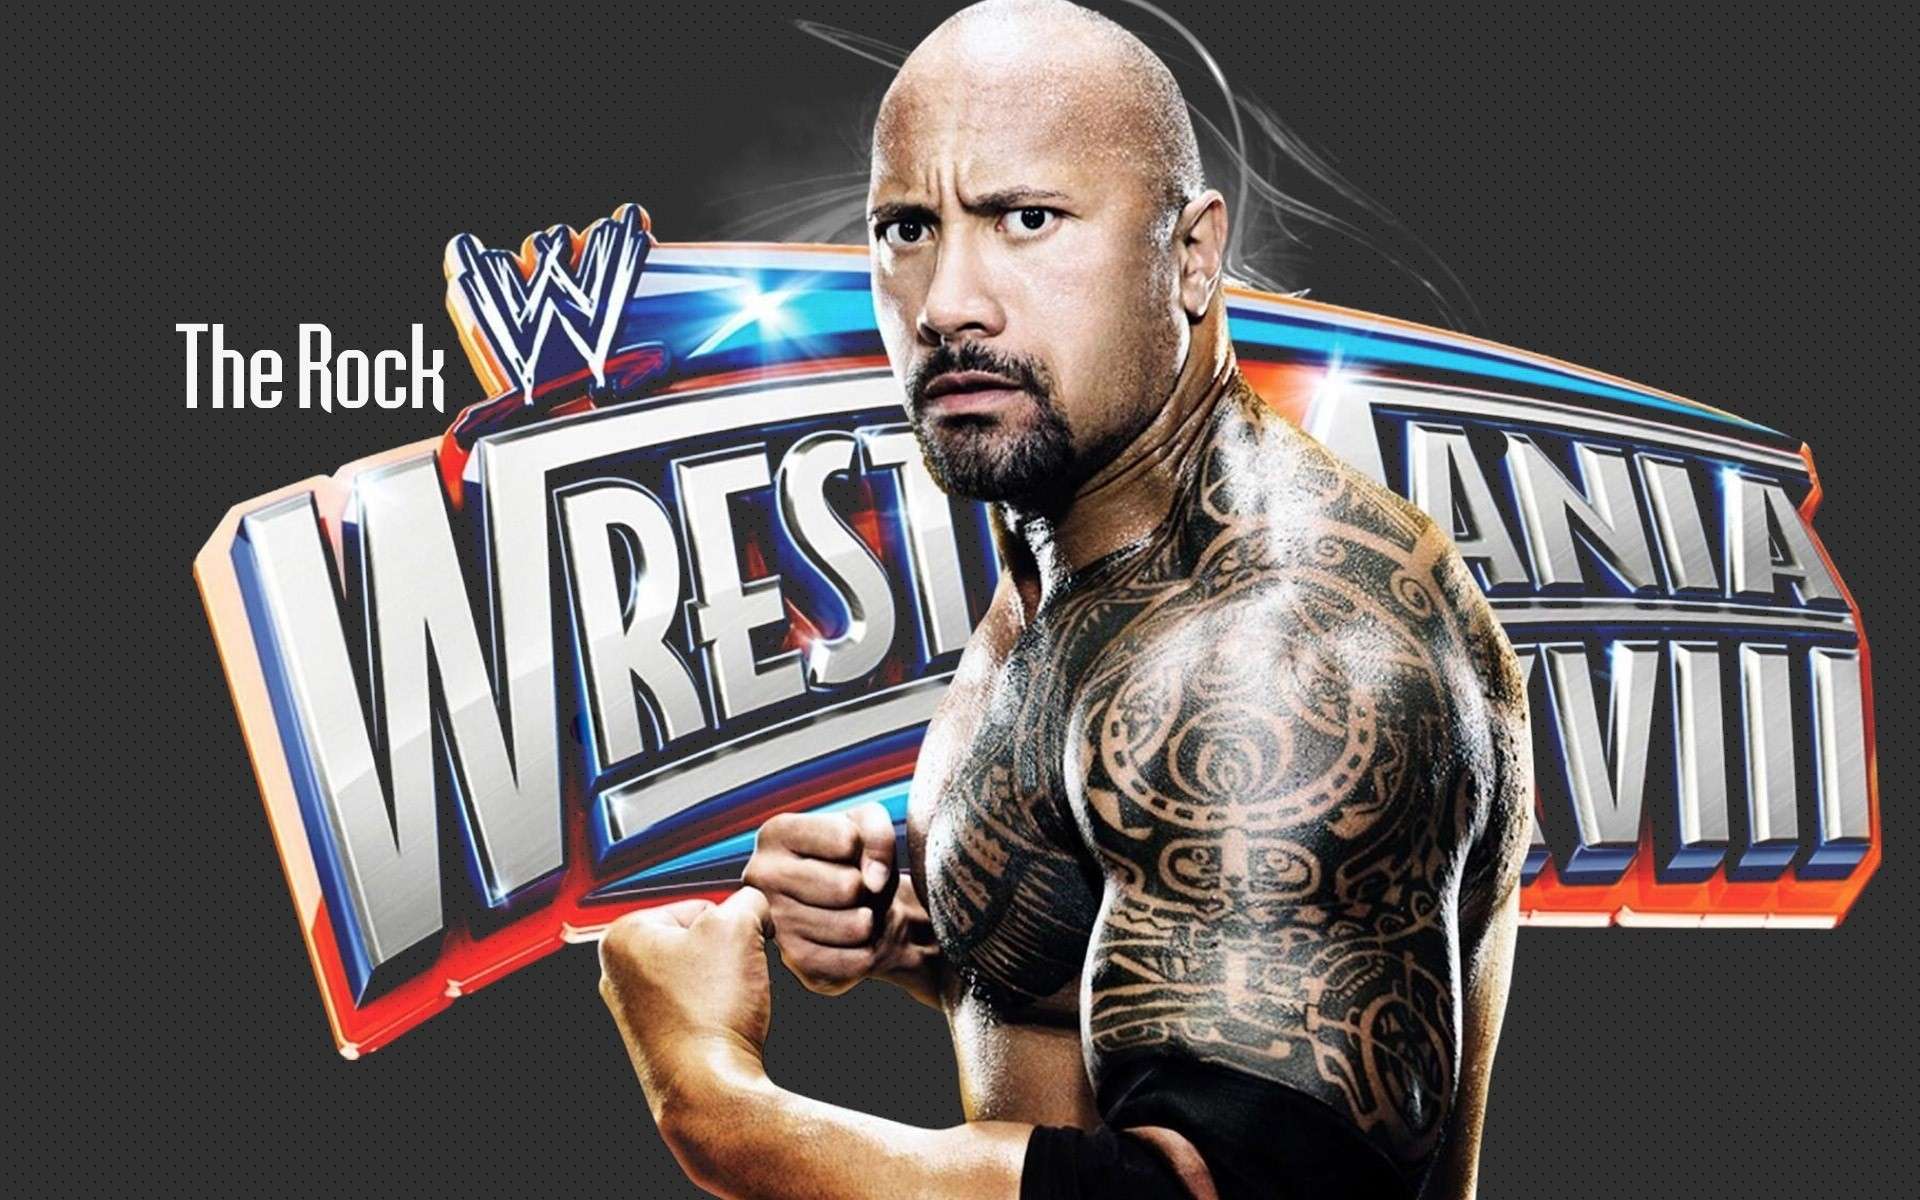 WWE Super Star The Rock in Wrestlemania